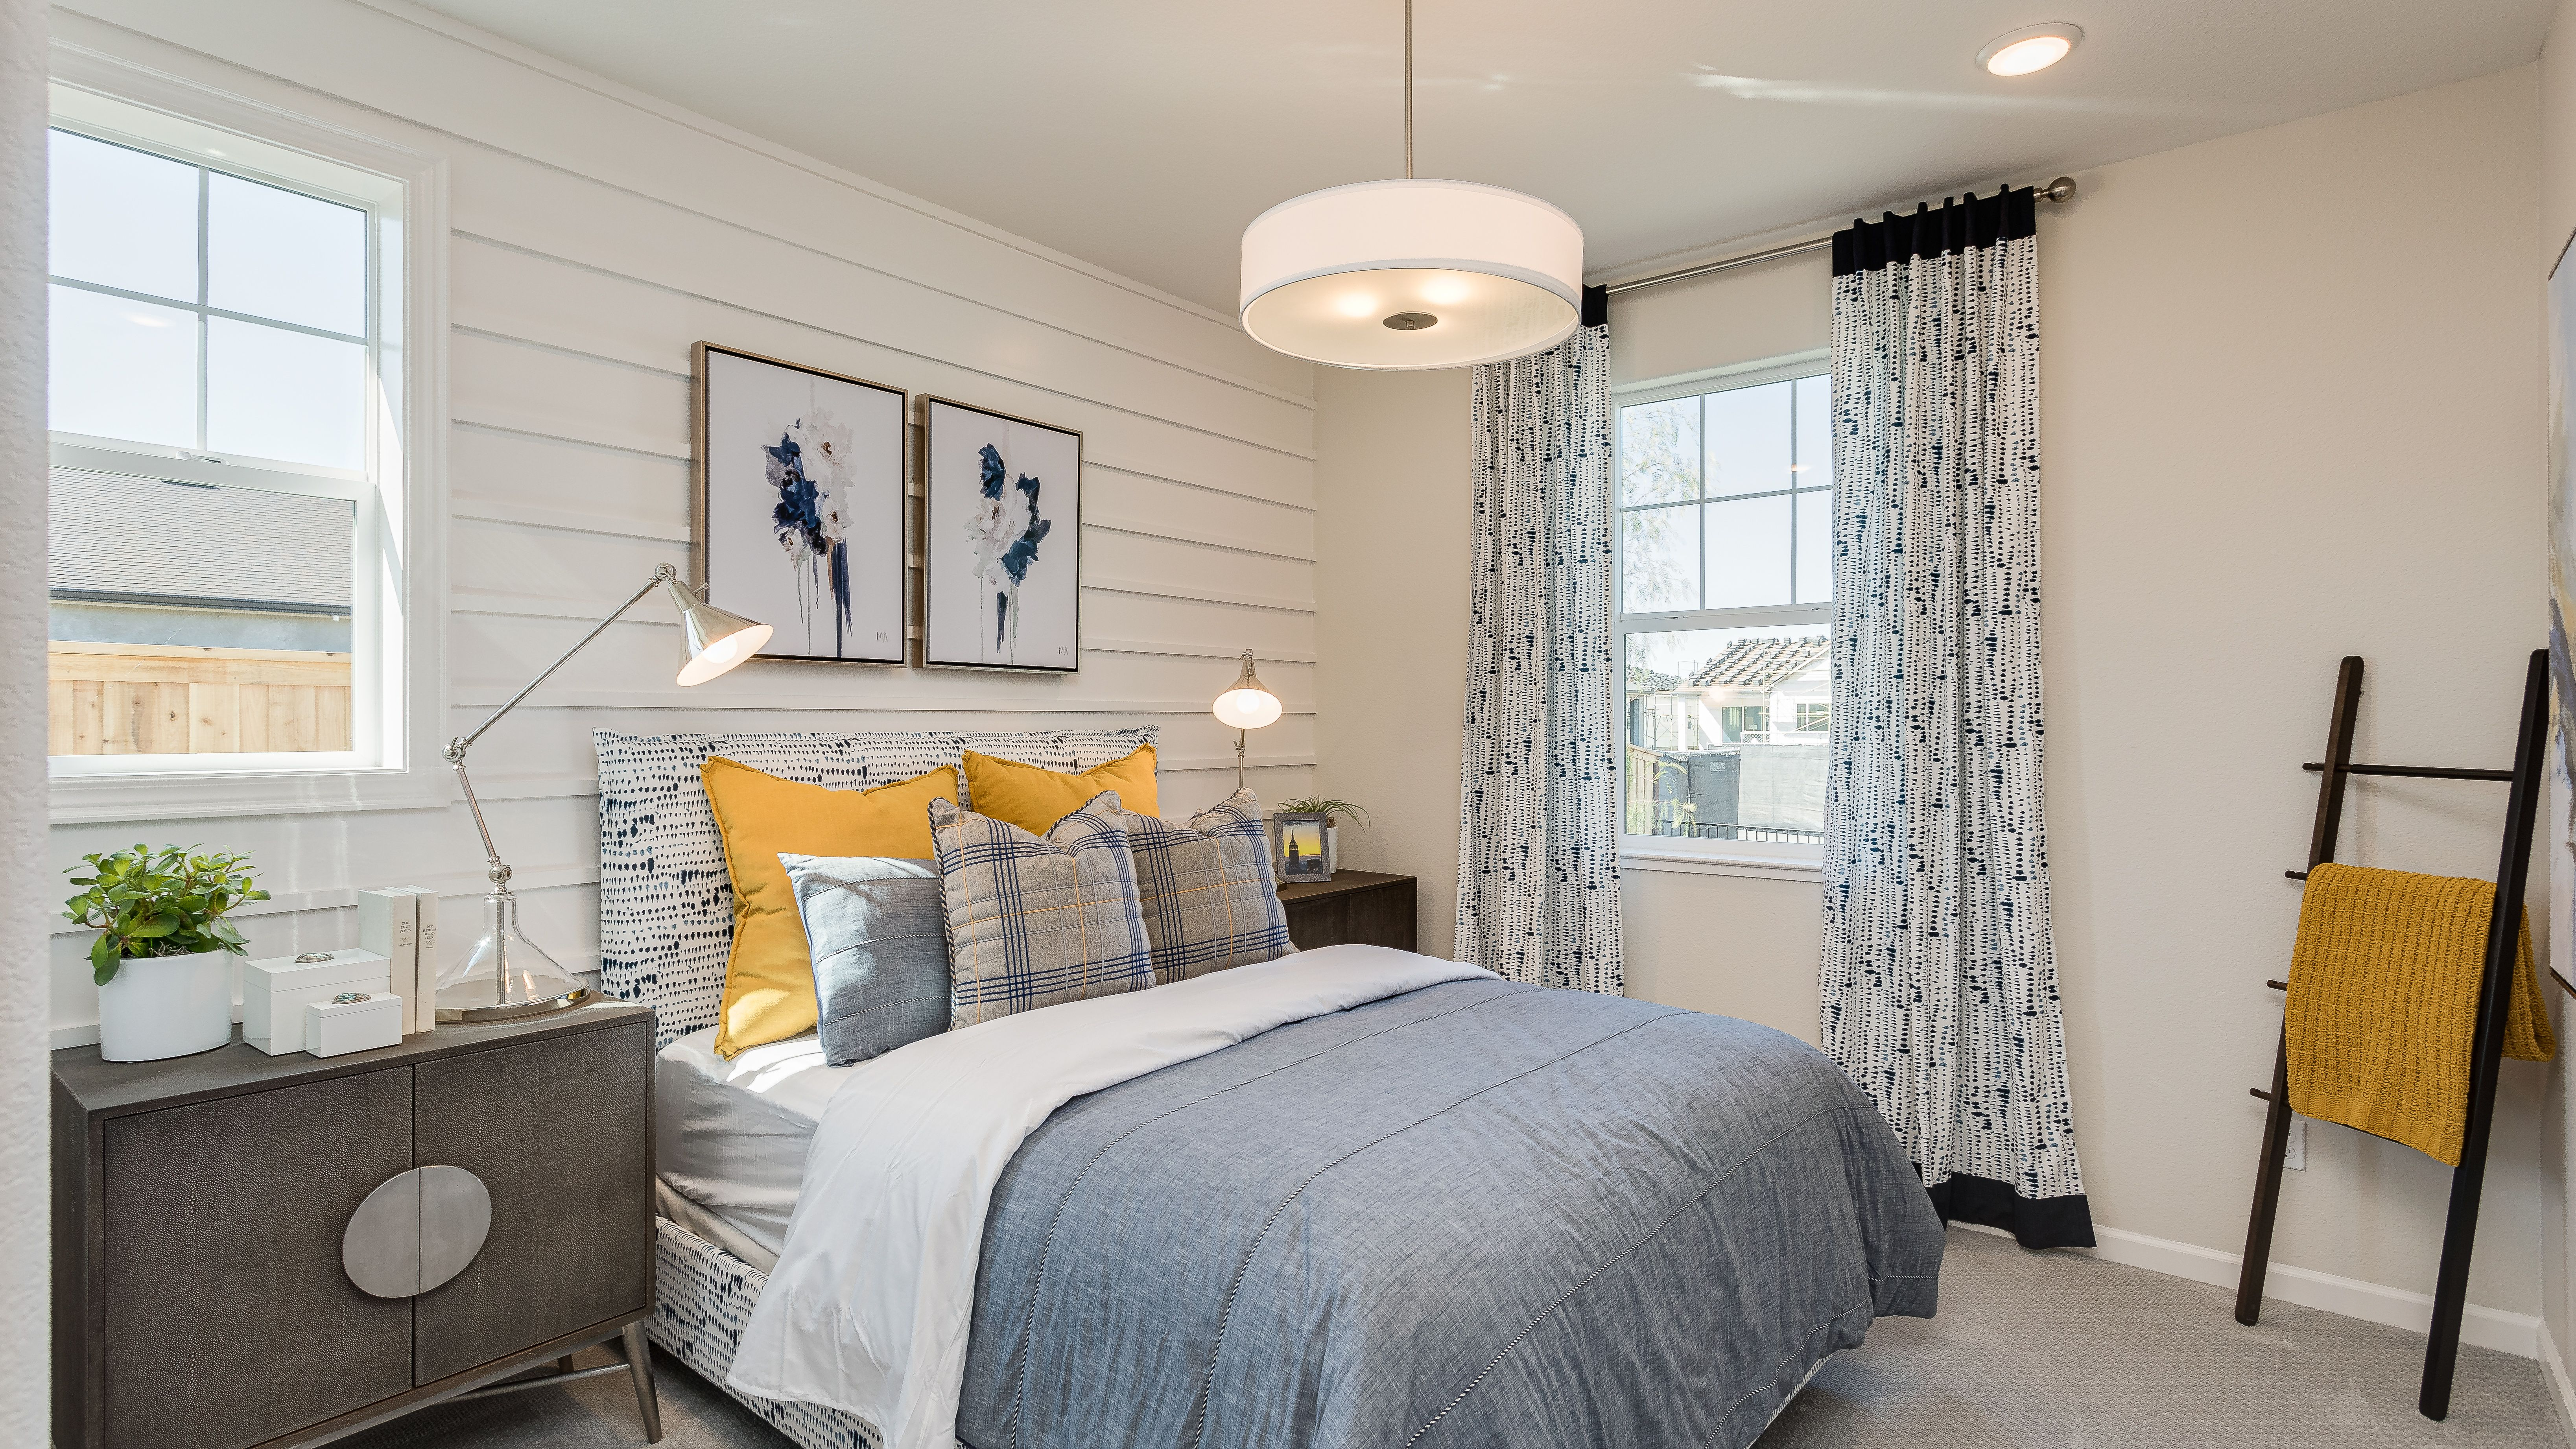 Bedroom featured in the Residence 1 By Taylor Morrison in Stockton-Lodi, CA